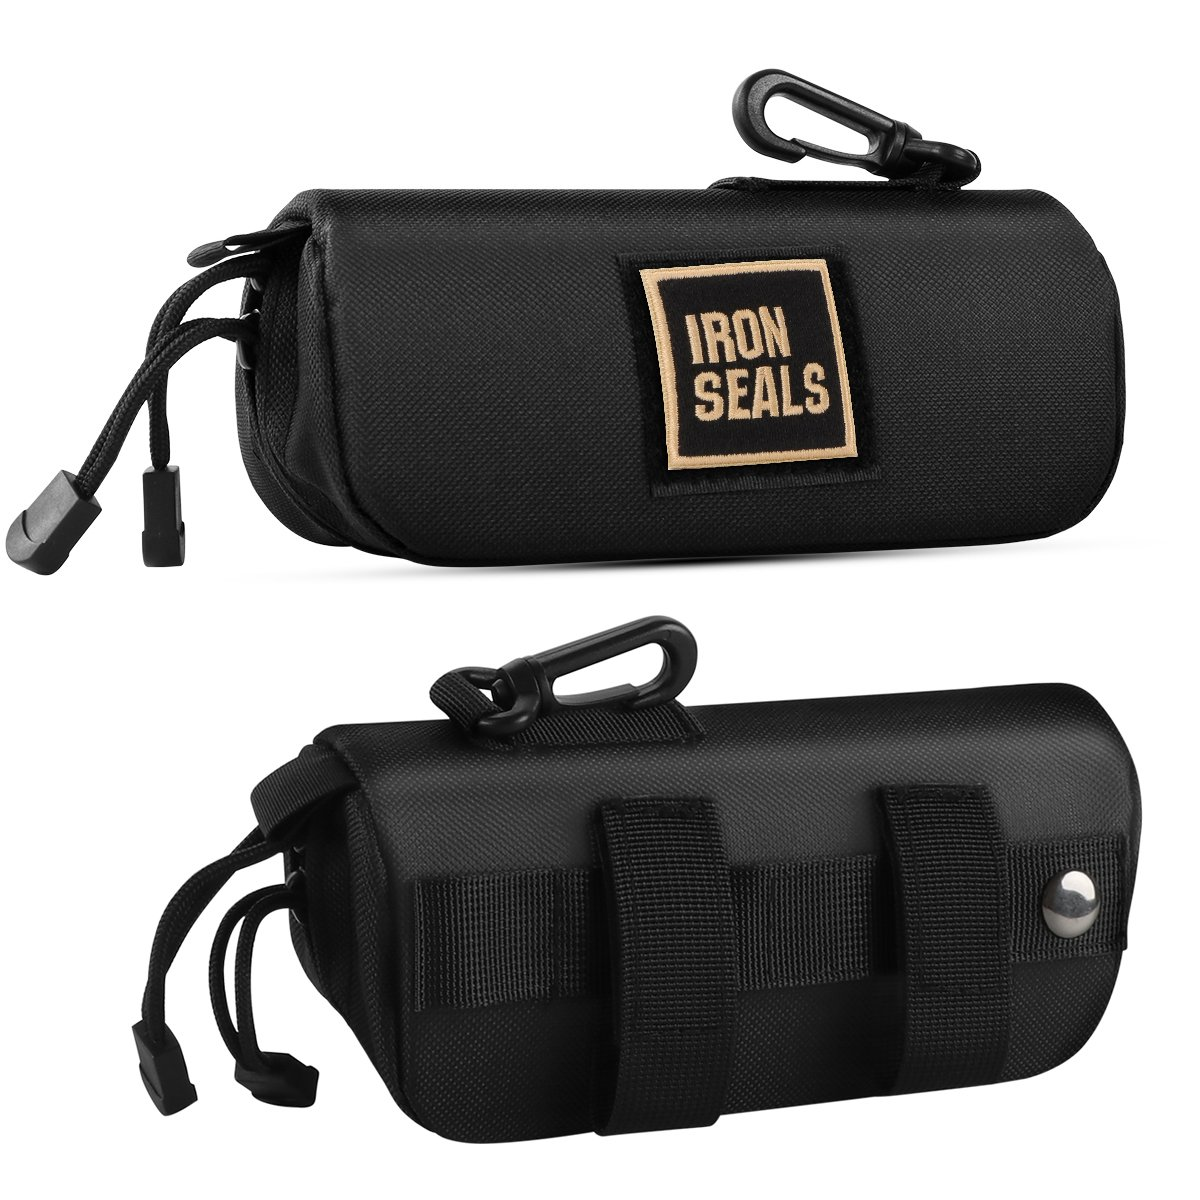 IronSeals Tactical Molle Sunglasses Case Oversized Anti-Shock Hard Clamshell Glasses Case